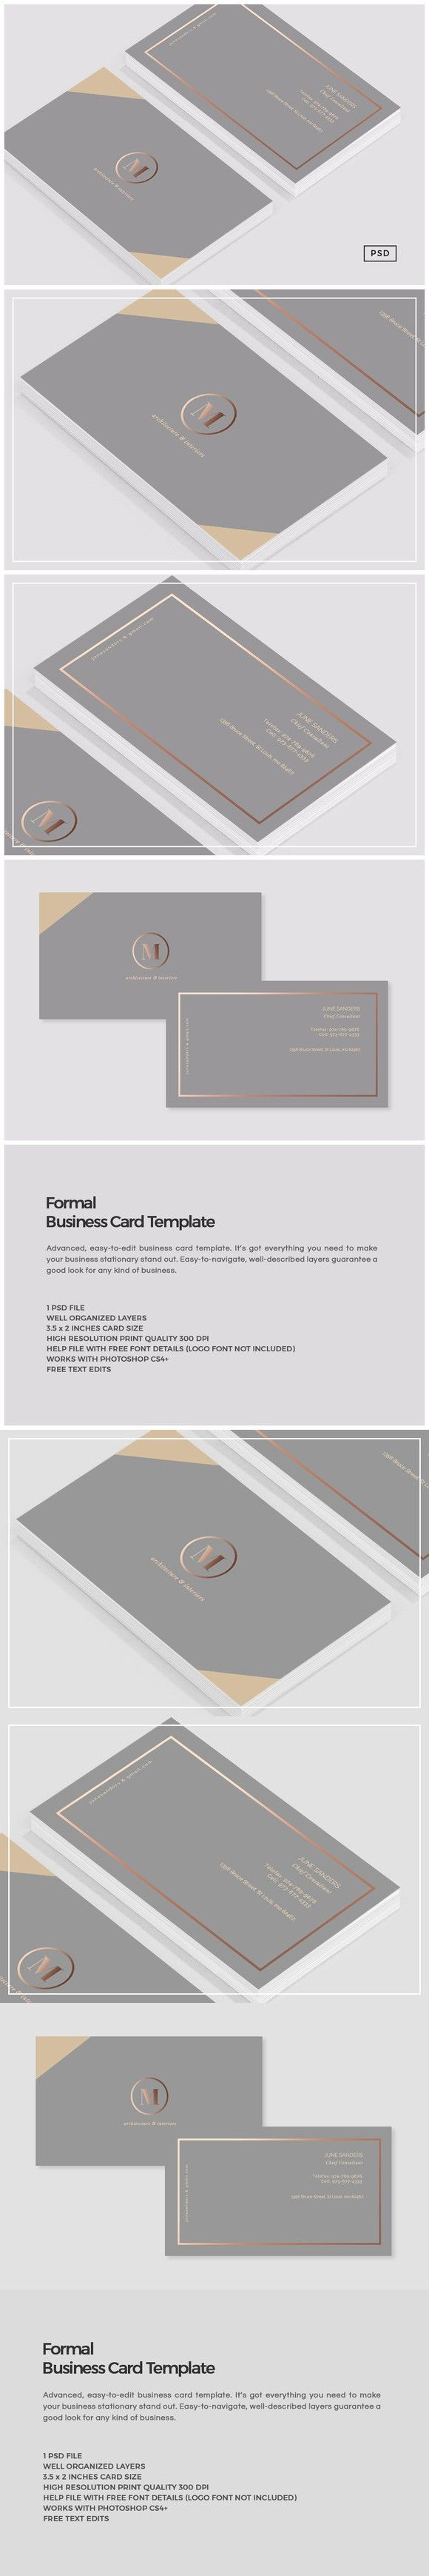 Formal Business Card Template | Business Card Templates ...